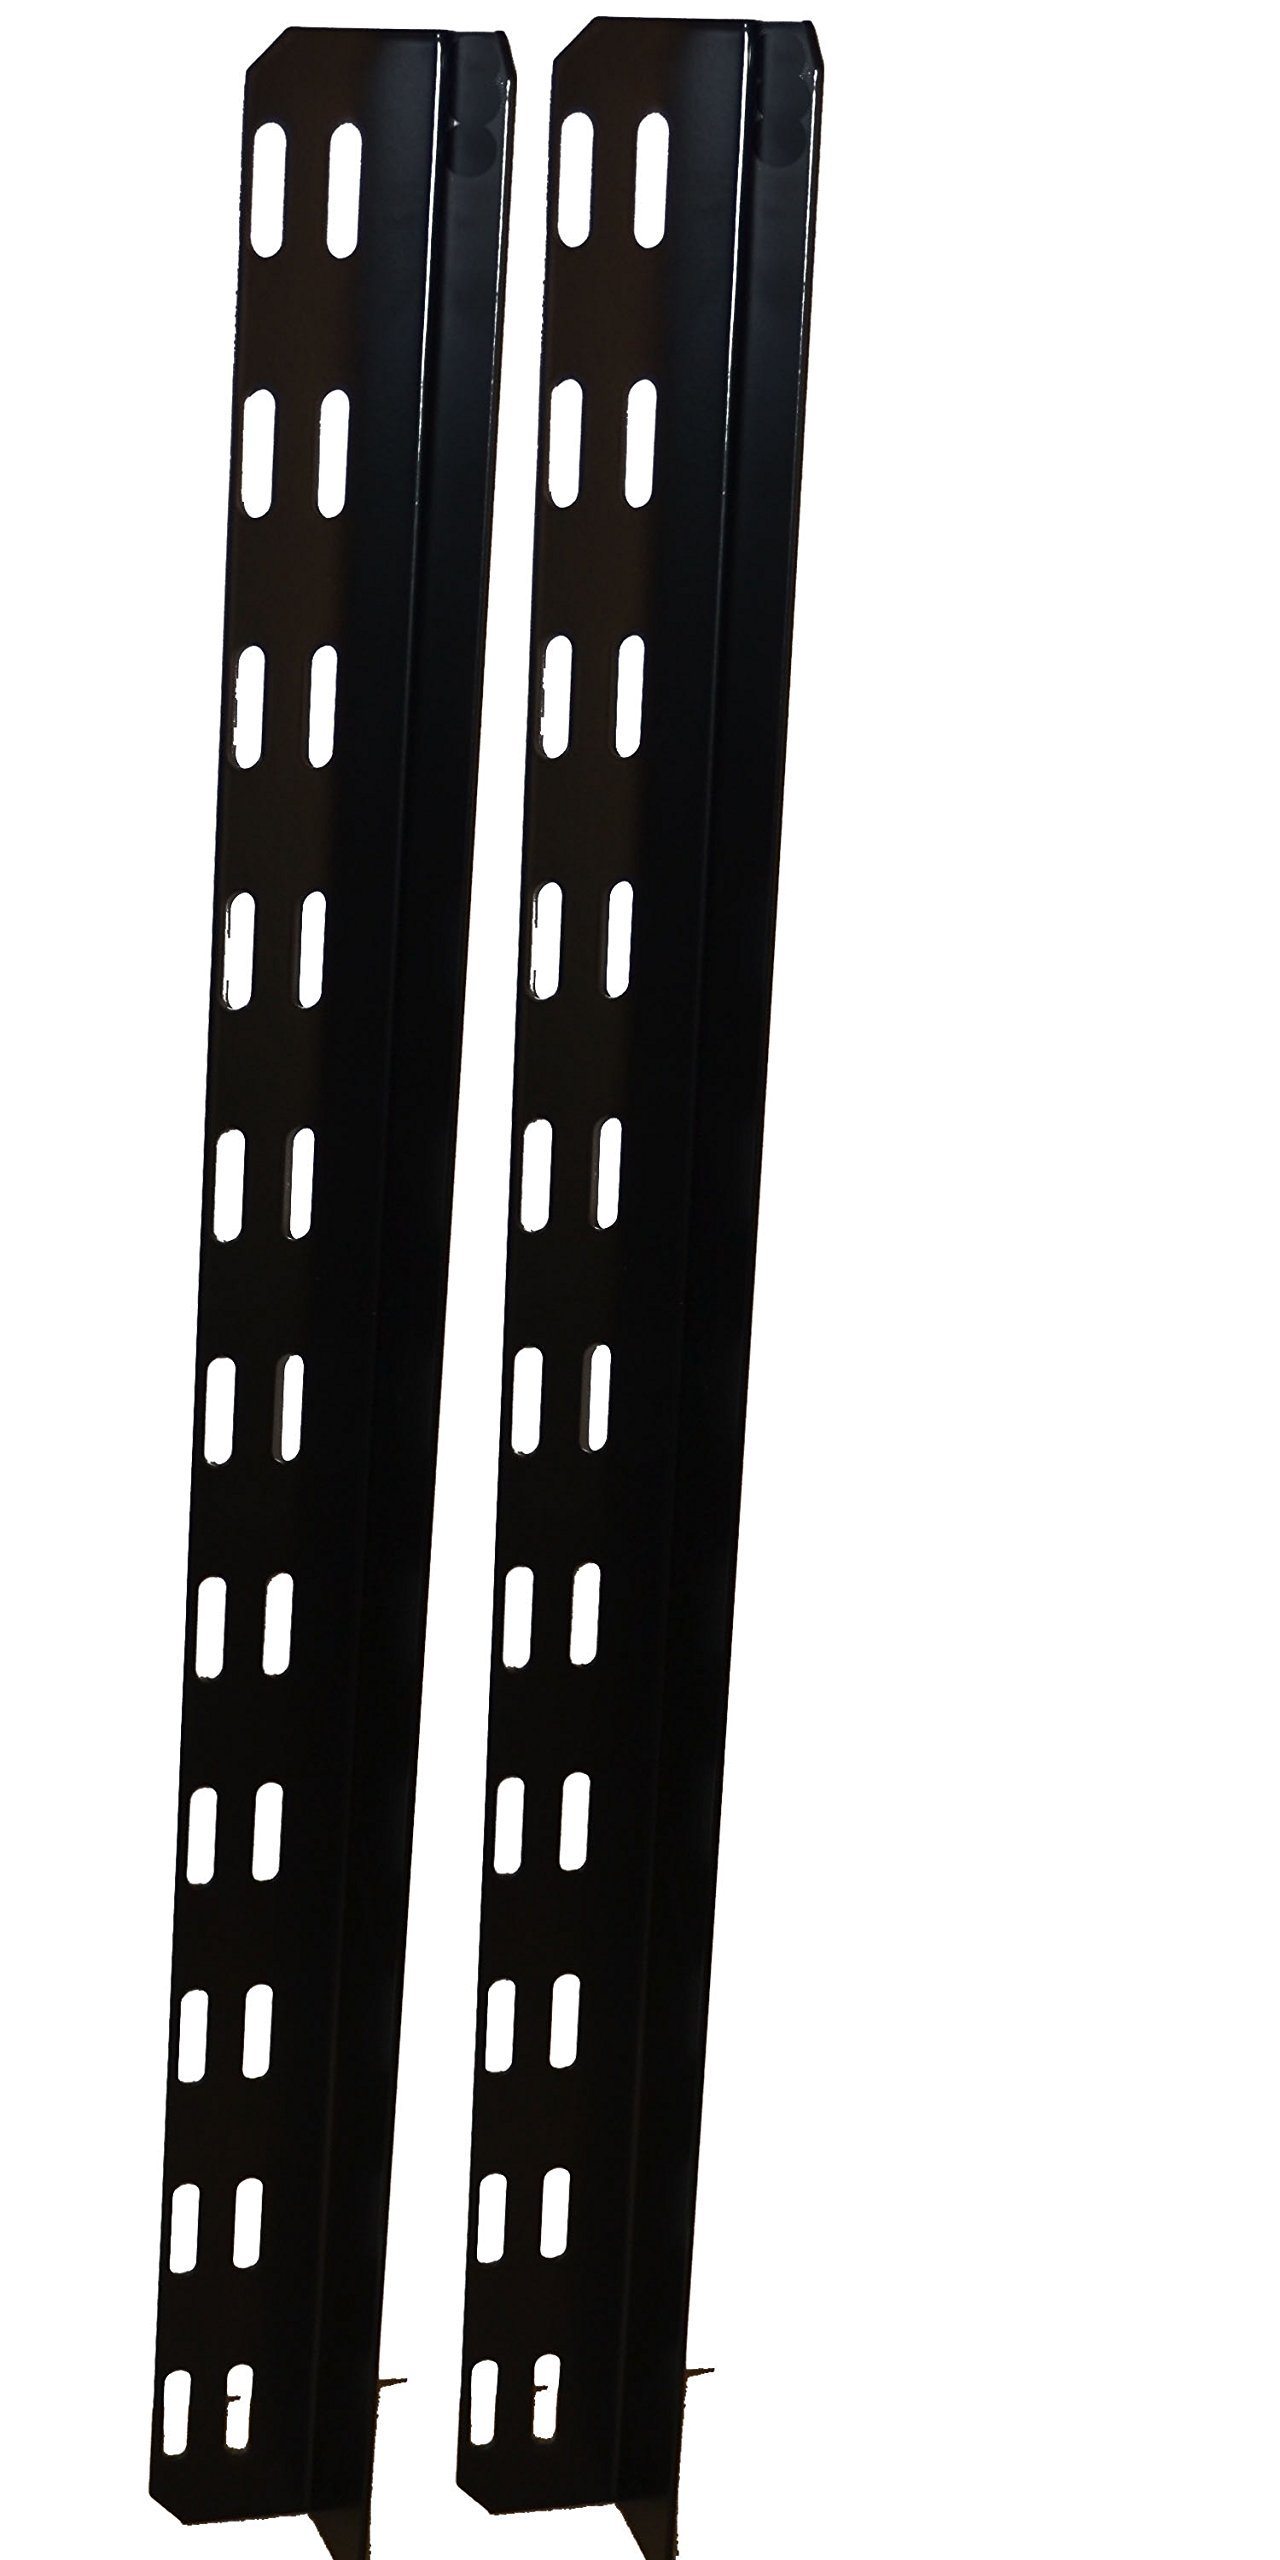 BUD Industries CSB-1354 14 Gauge Steel Chassis Support Bracket, 23'' Length x 1-45/64'' Height, Black Finish